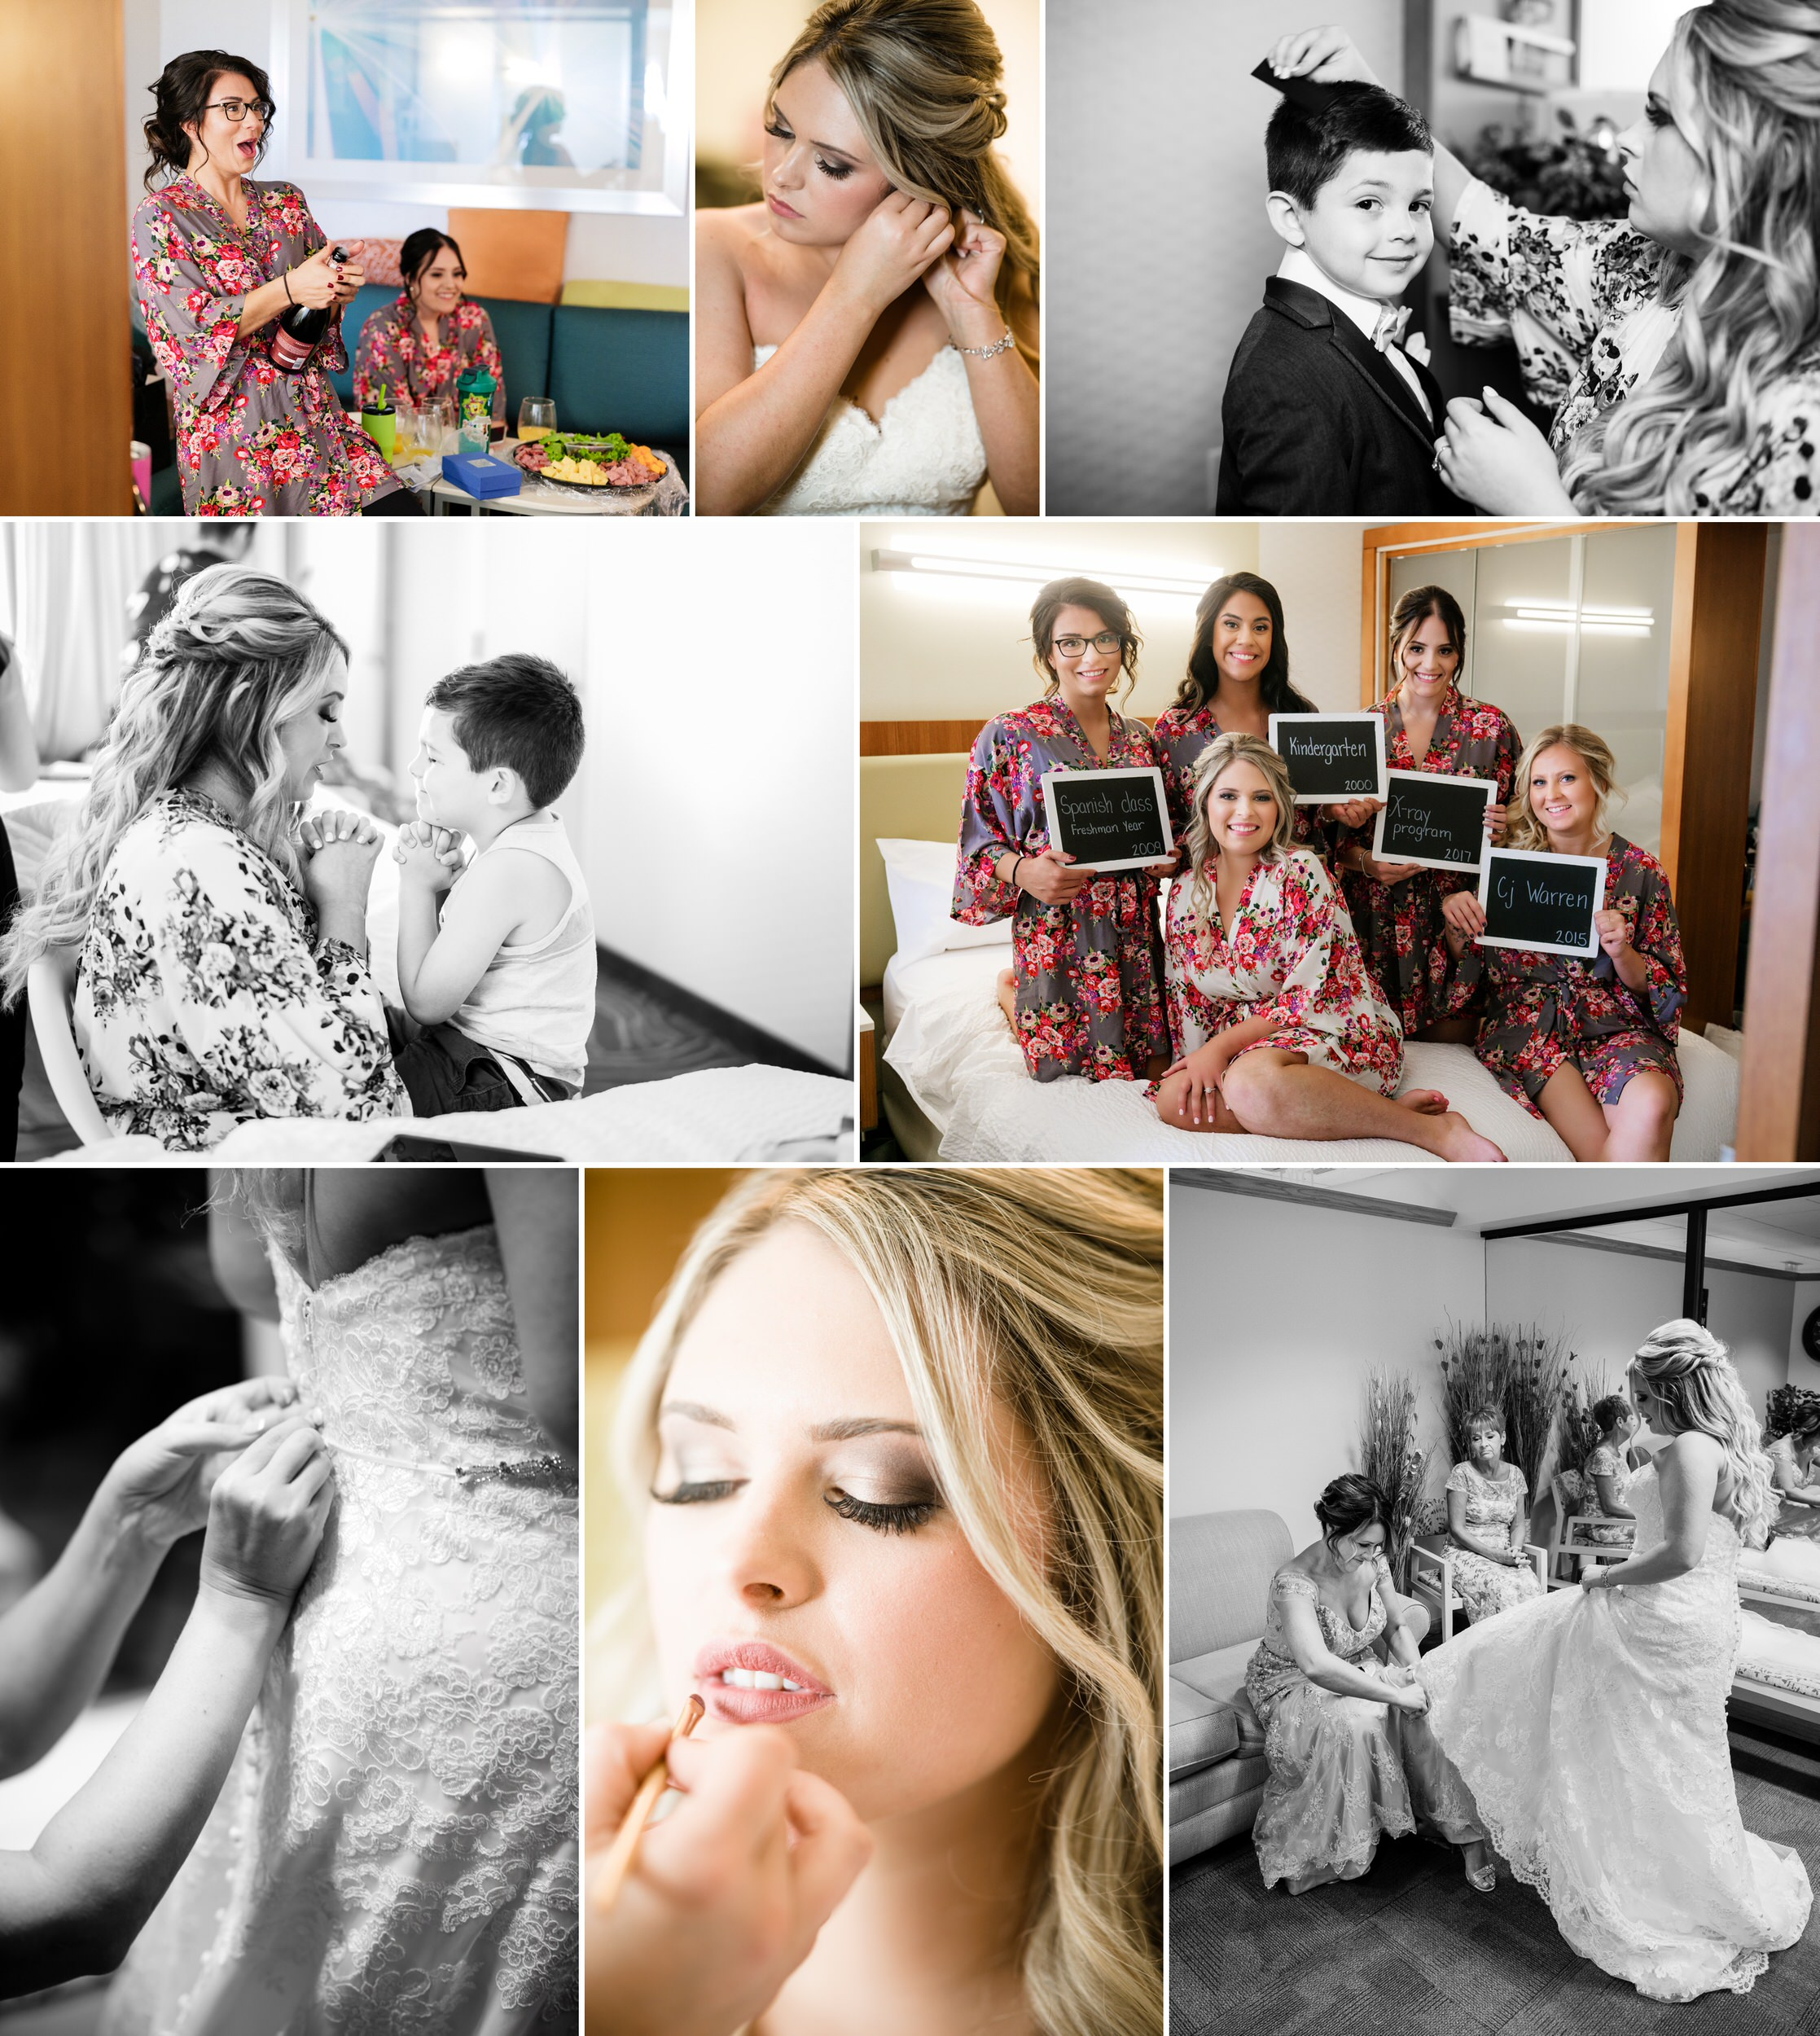 Bridal prep at the Marriott and the Centennial Park bridal suite.